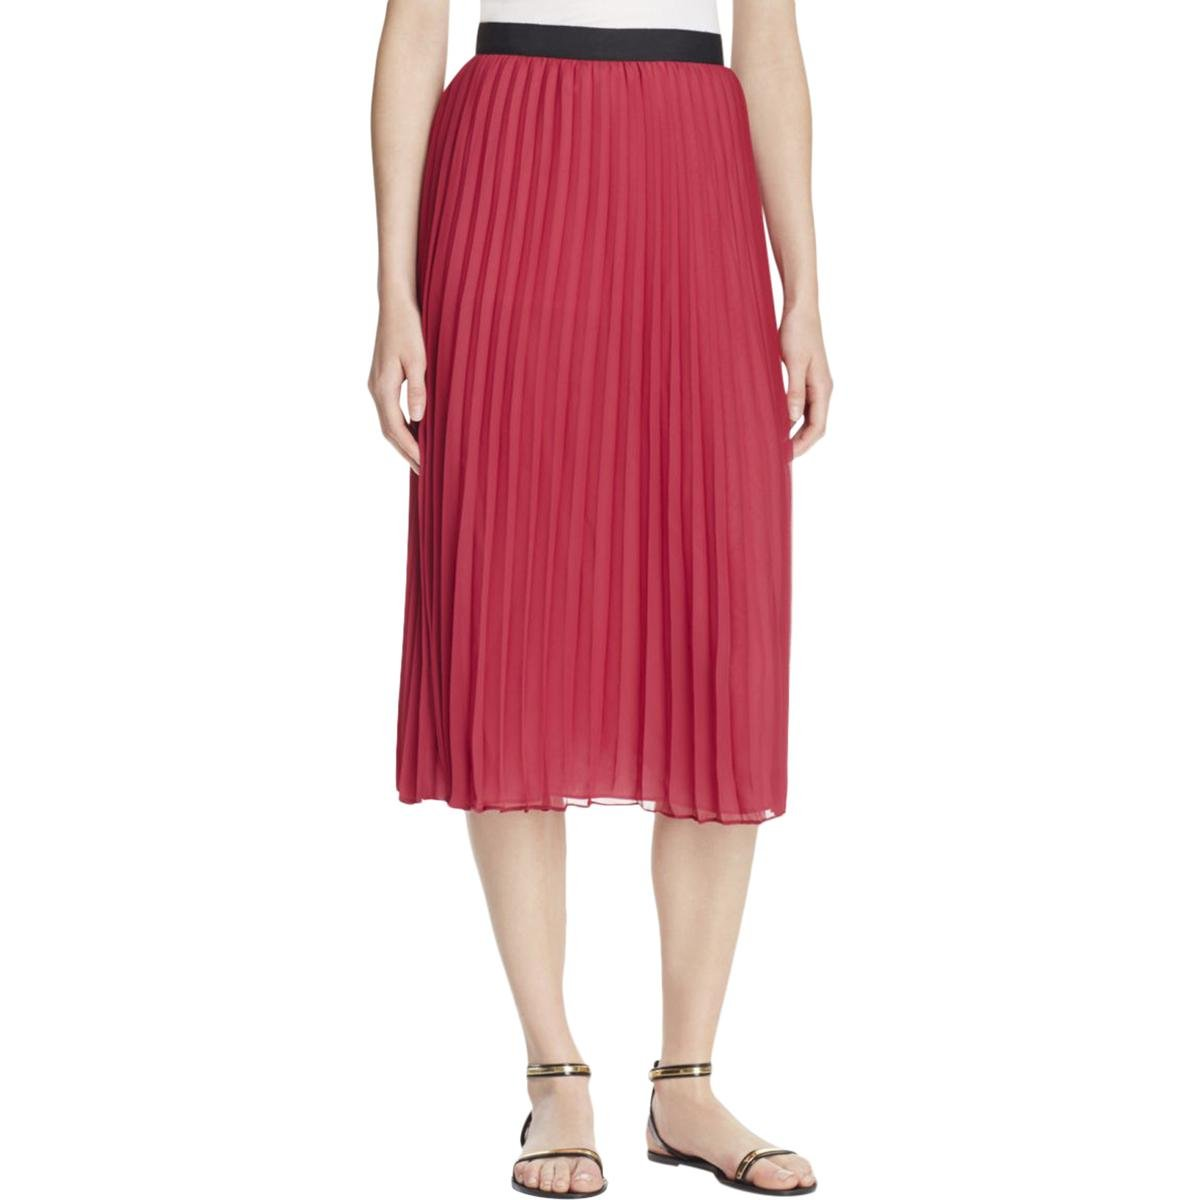 Likely Womens Ruffled Contrast Waist Band A-Line Skirt Red 0